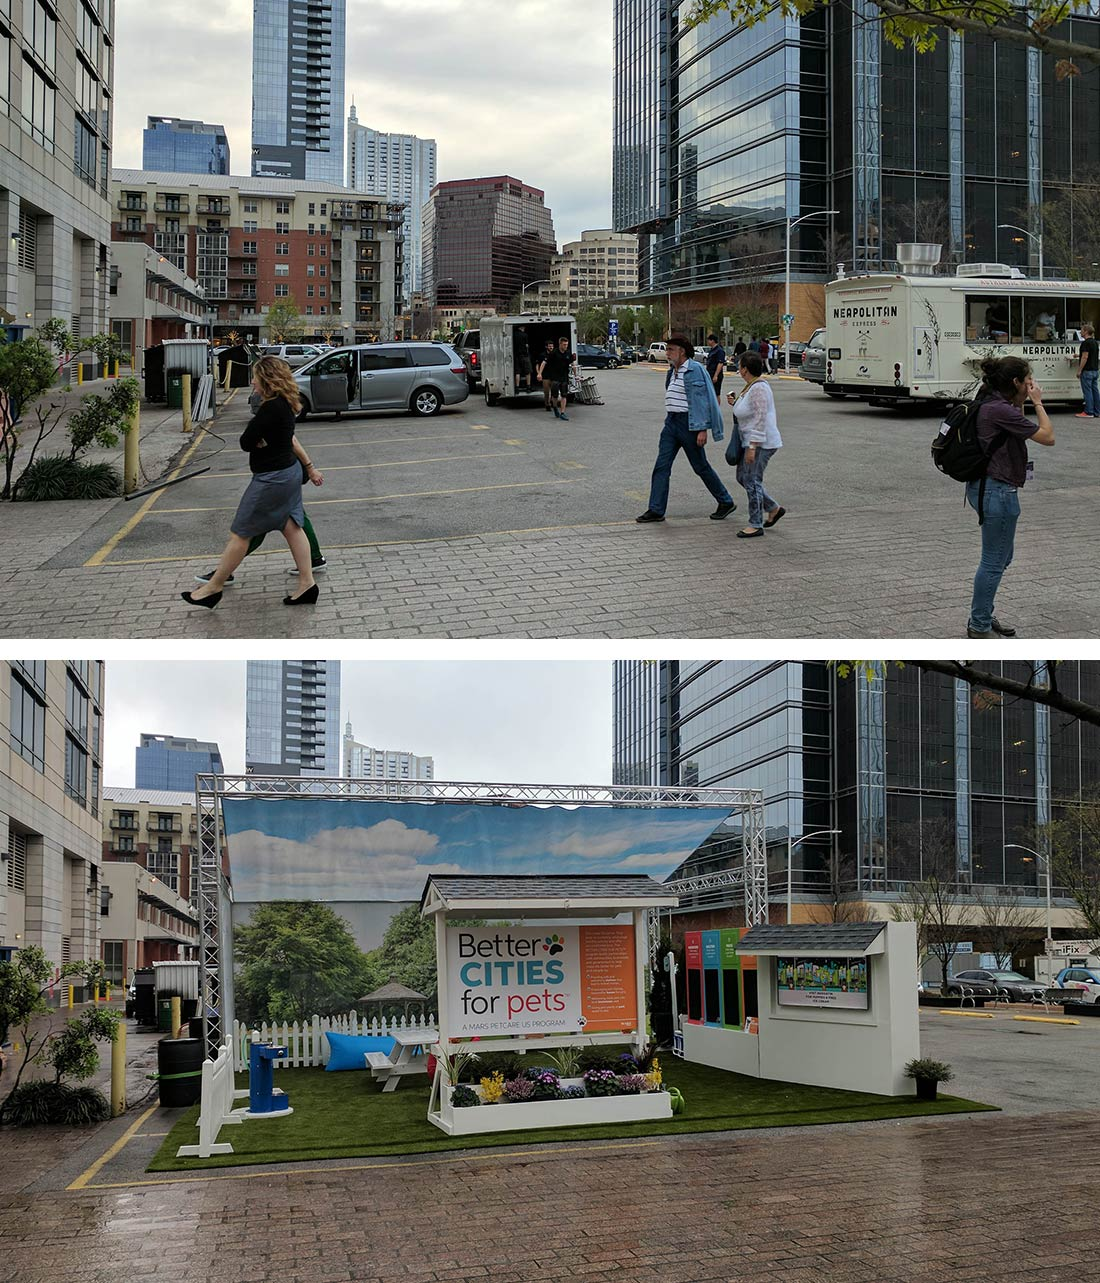 Austin before and after adding a pop-up park for city pets